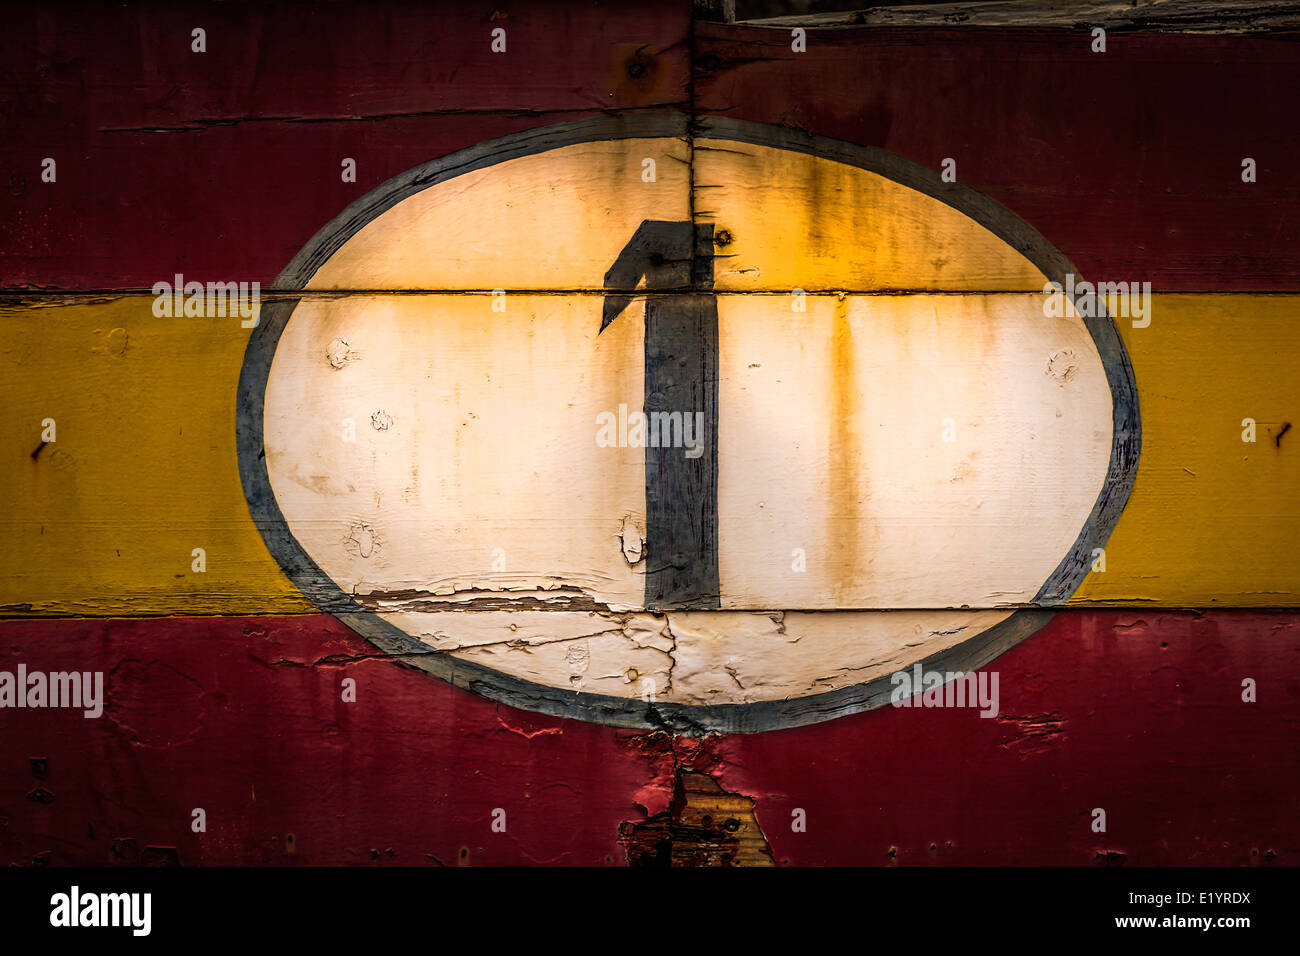 Old painted signs with numerals. Number 1 from a series. - Stock Image